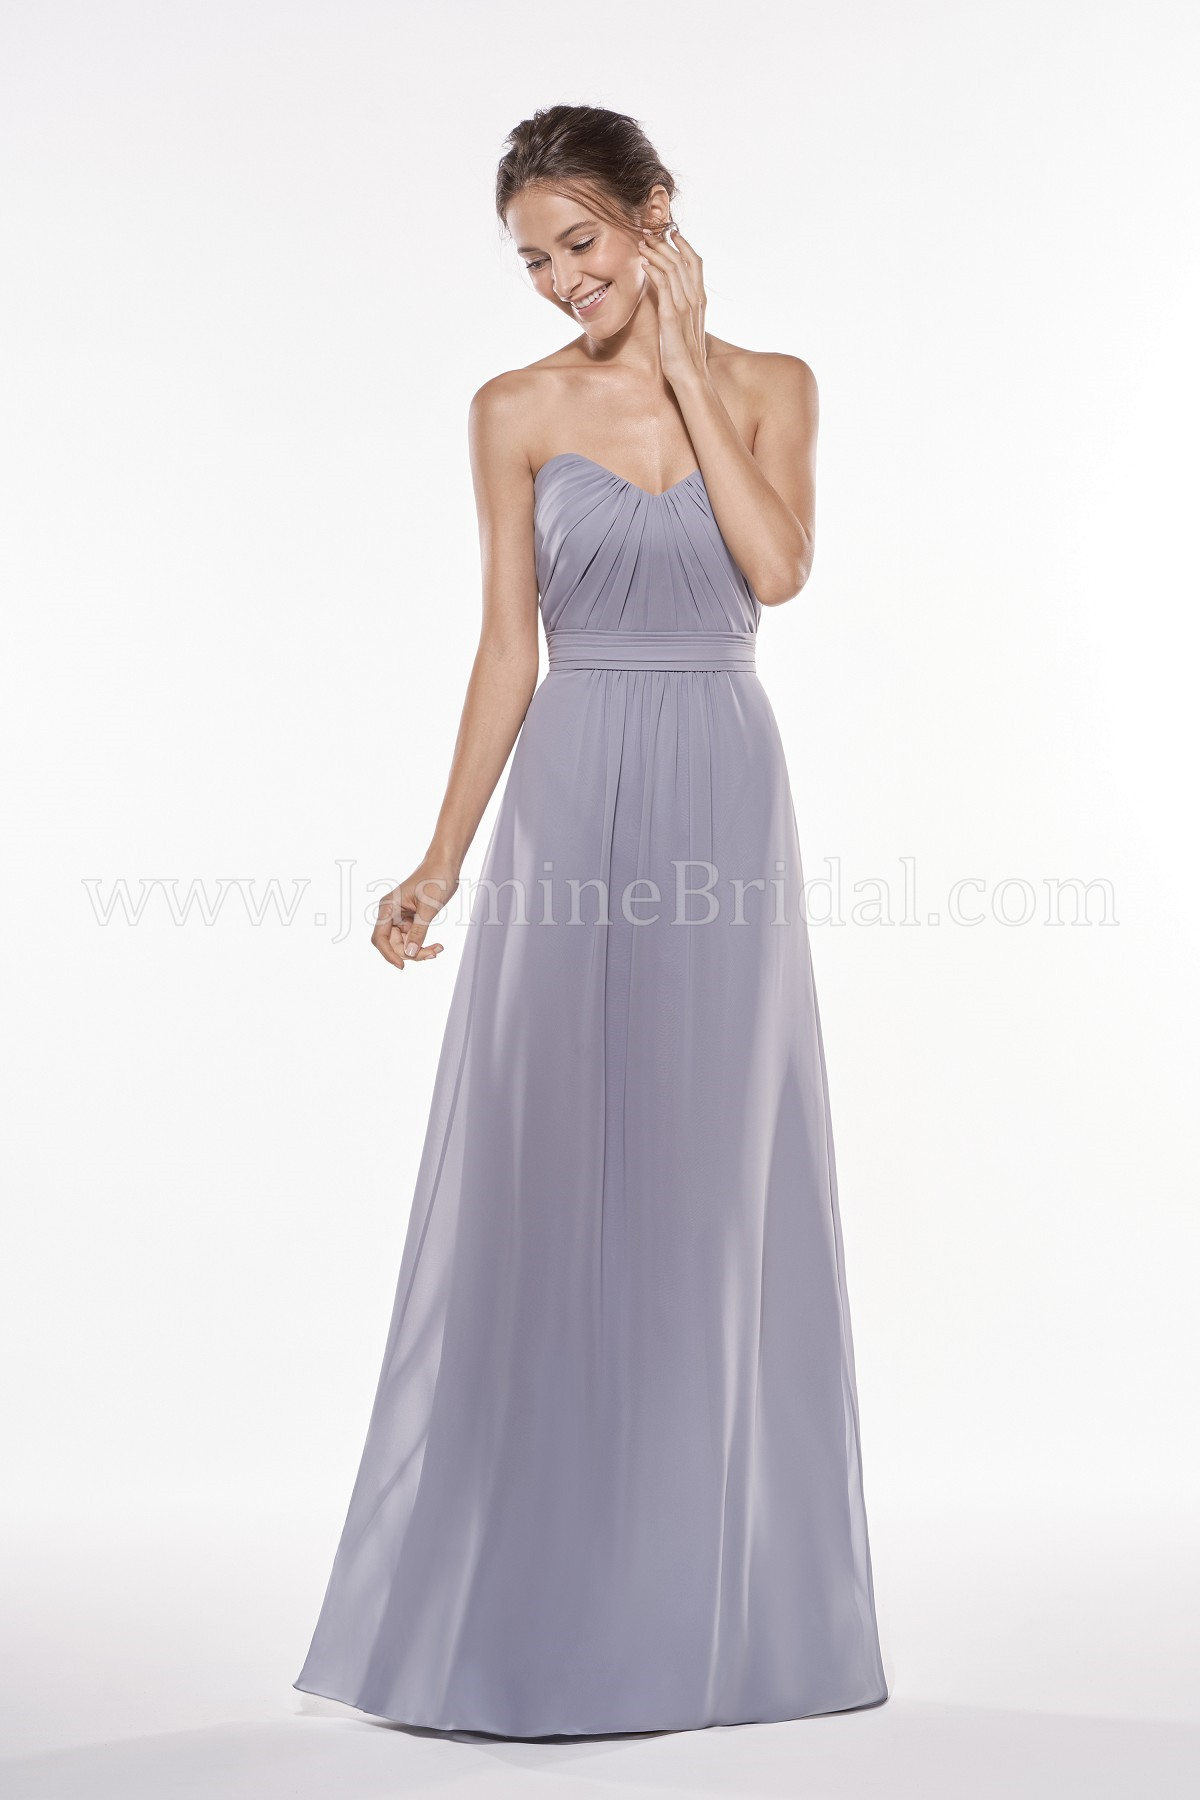 P196005 Long Sweetheart Strapless Georgette Bridesmaid Dress